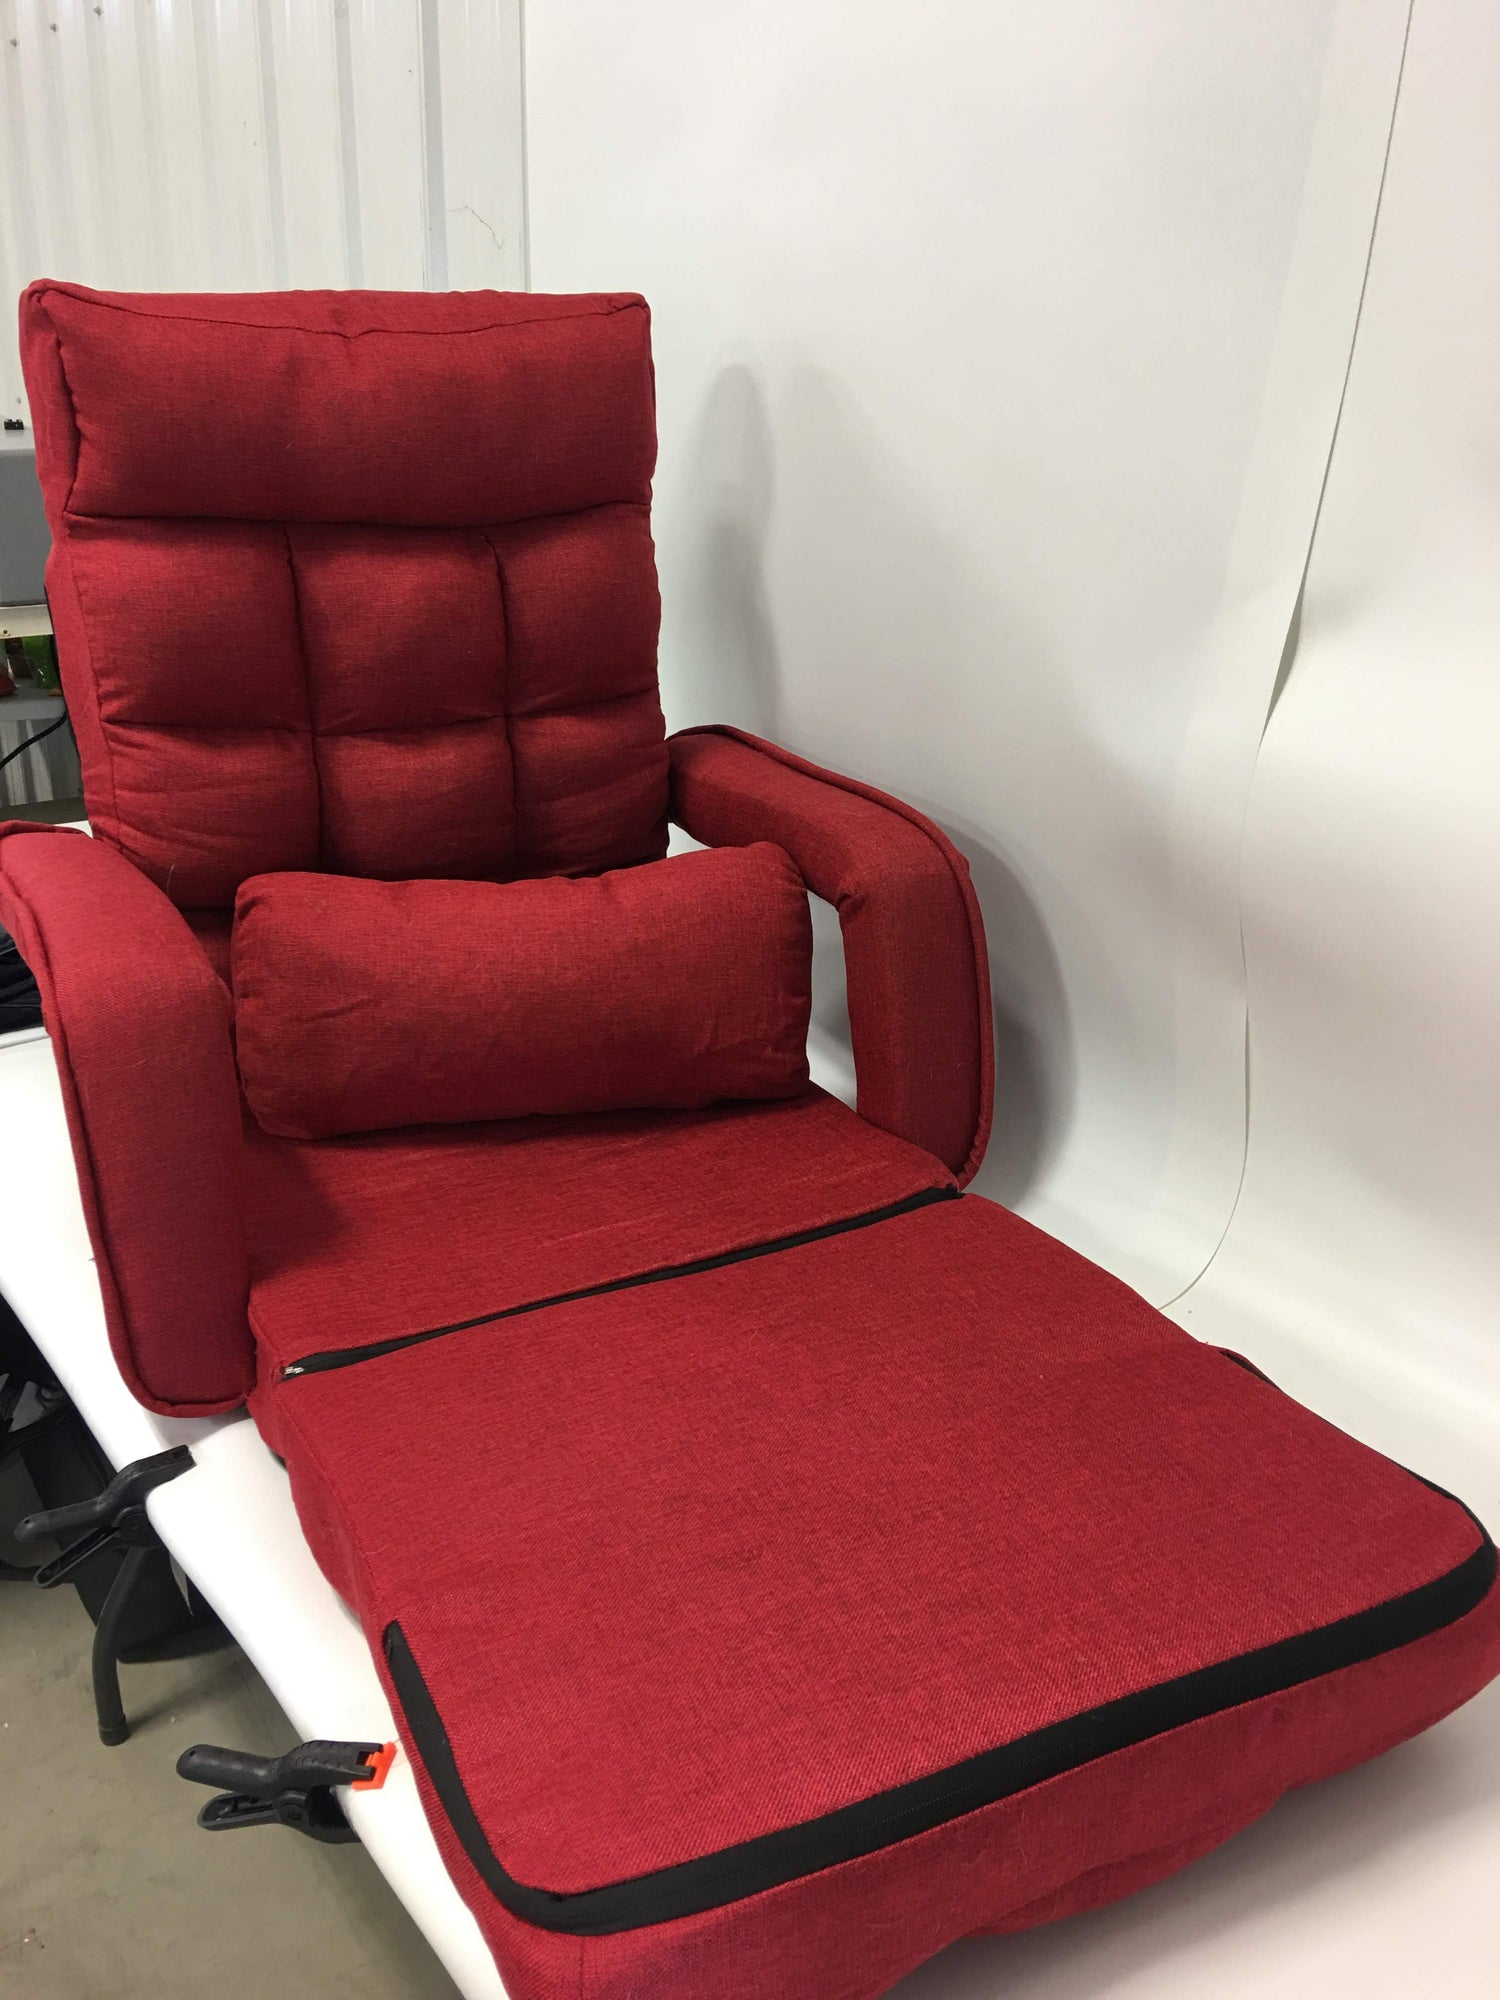 Brilliant Merax Folding Lazy Floor Chair Sofa Lounger Bed With Armrests And A Pillow Red Caraccident5 Cool Chair Designs And Ideas Caraccident5Info